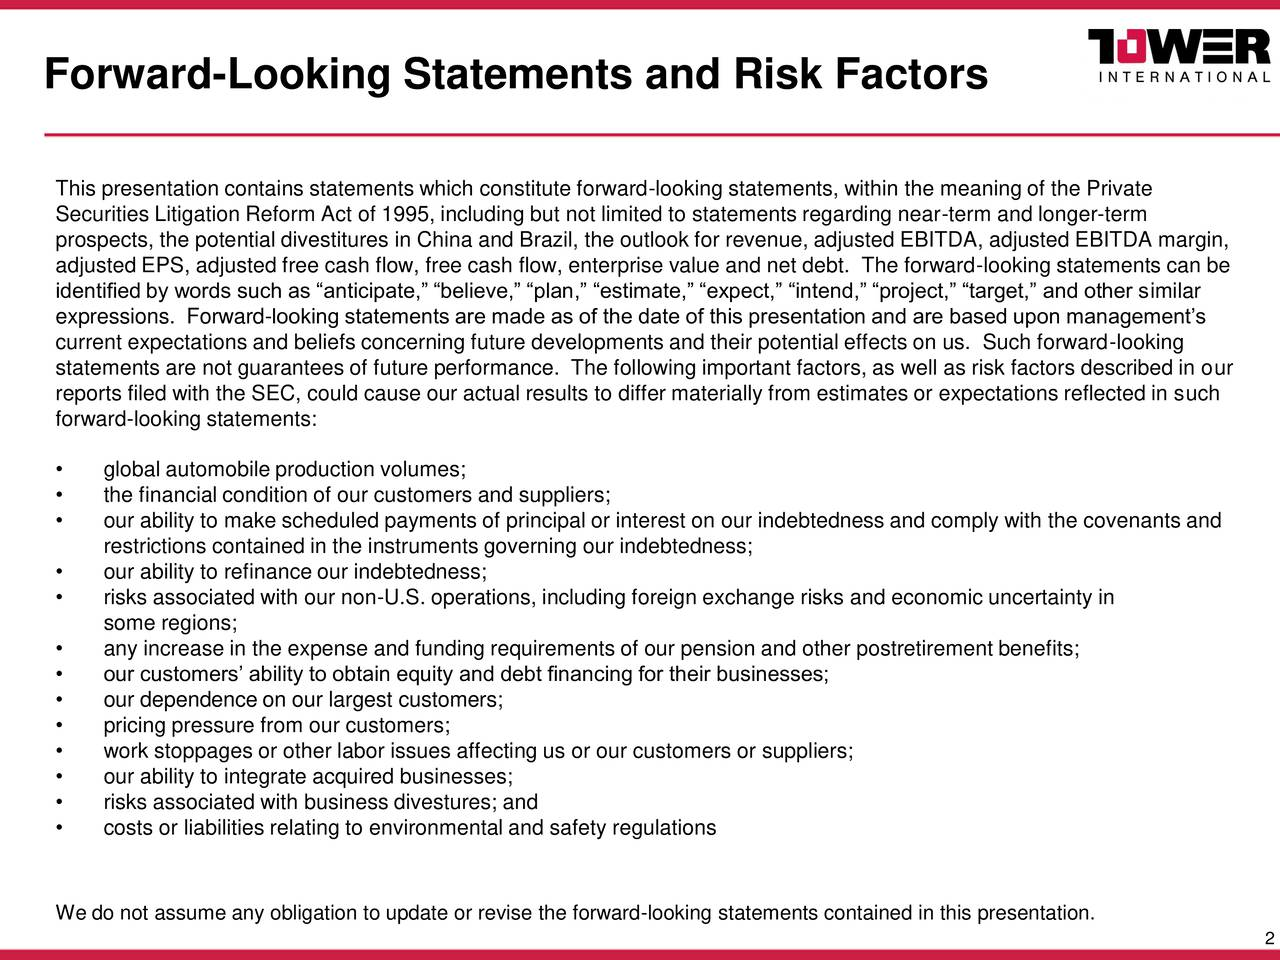 This presentation contains statements which constitute forward-looking statements, within the meaning of the Private Securities Litigation Reform Act of 1995, including but not limited to statements regarding near-term and longer-term prospects, the potential divestitures in China and Brazil, the outlook for revenue, adjusted EBITDA, adjusted EBITDA margin, adjusted EPS, adjusted free cash flow, free cash flow, enterprise value and net debt. The forward-looking statements can be identified by words such as anticipate, believe, plan, estimate, expect, intend, project, target, and other similar expressions. Forward-looking statements are made as of the date of this presentation and are based upon managements current expectations and beliefs concerning future developments and their potential effects on us. Such forward-looking statements are not guarantees of future performance. The following important factors, as well as risk factors described in our reports filed with the SEC, could cause our actual results to differ materially from estimates or expectations reflected in such forward-looking statements: global automobile production volumes; the financial condition of our customers and suppliers; our ability to make scheduled payments of principal or interest on our indebtedness and comply with the covenants and restrictions contained in the instruments governing our indebtedness; our ability to refinance our indebtedness; risks associated with our non-U.S. operations, including foreign exchange risks and economic uncertainty in some regions; any increase in the expense and funding requirements of our pension and other postretirement benefits; our customers ability to obtain equity and debt financing for their businesses; our dependence on our largest customers; pricing pressure from our customers; work stoppages or other labor issues affecting us or our customers or suppliers; our ability to integrate acquired businesses; risks associated with business divestures; an